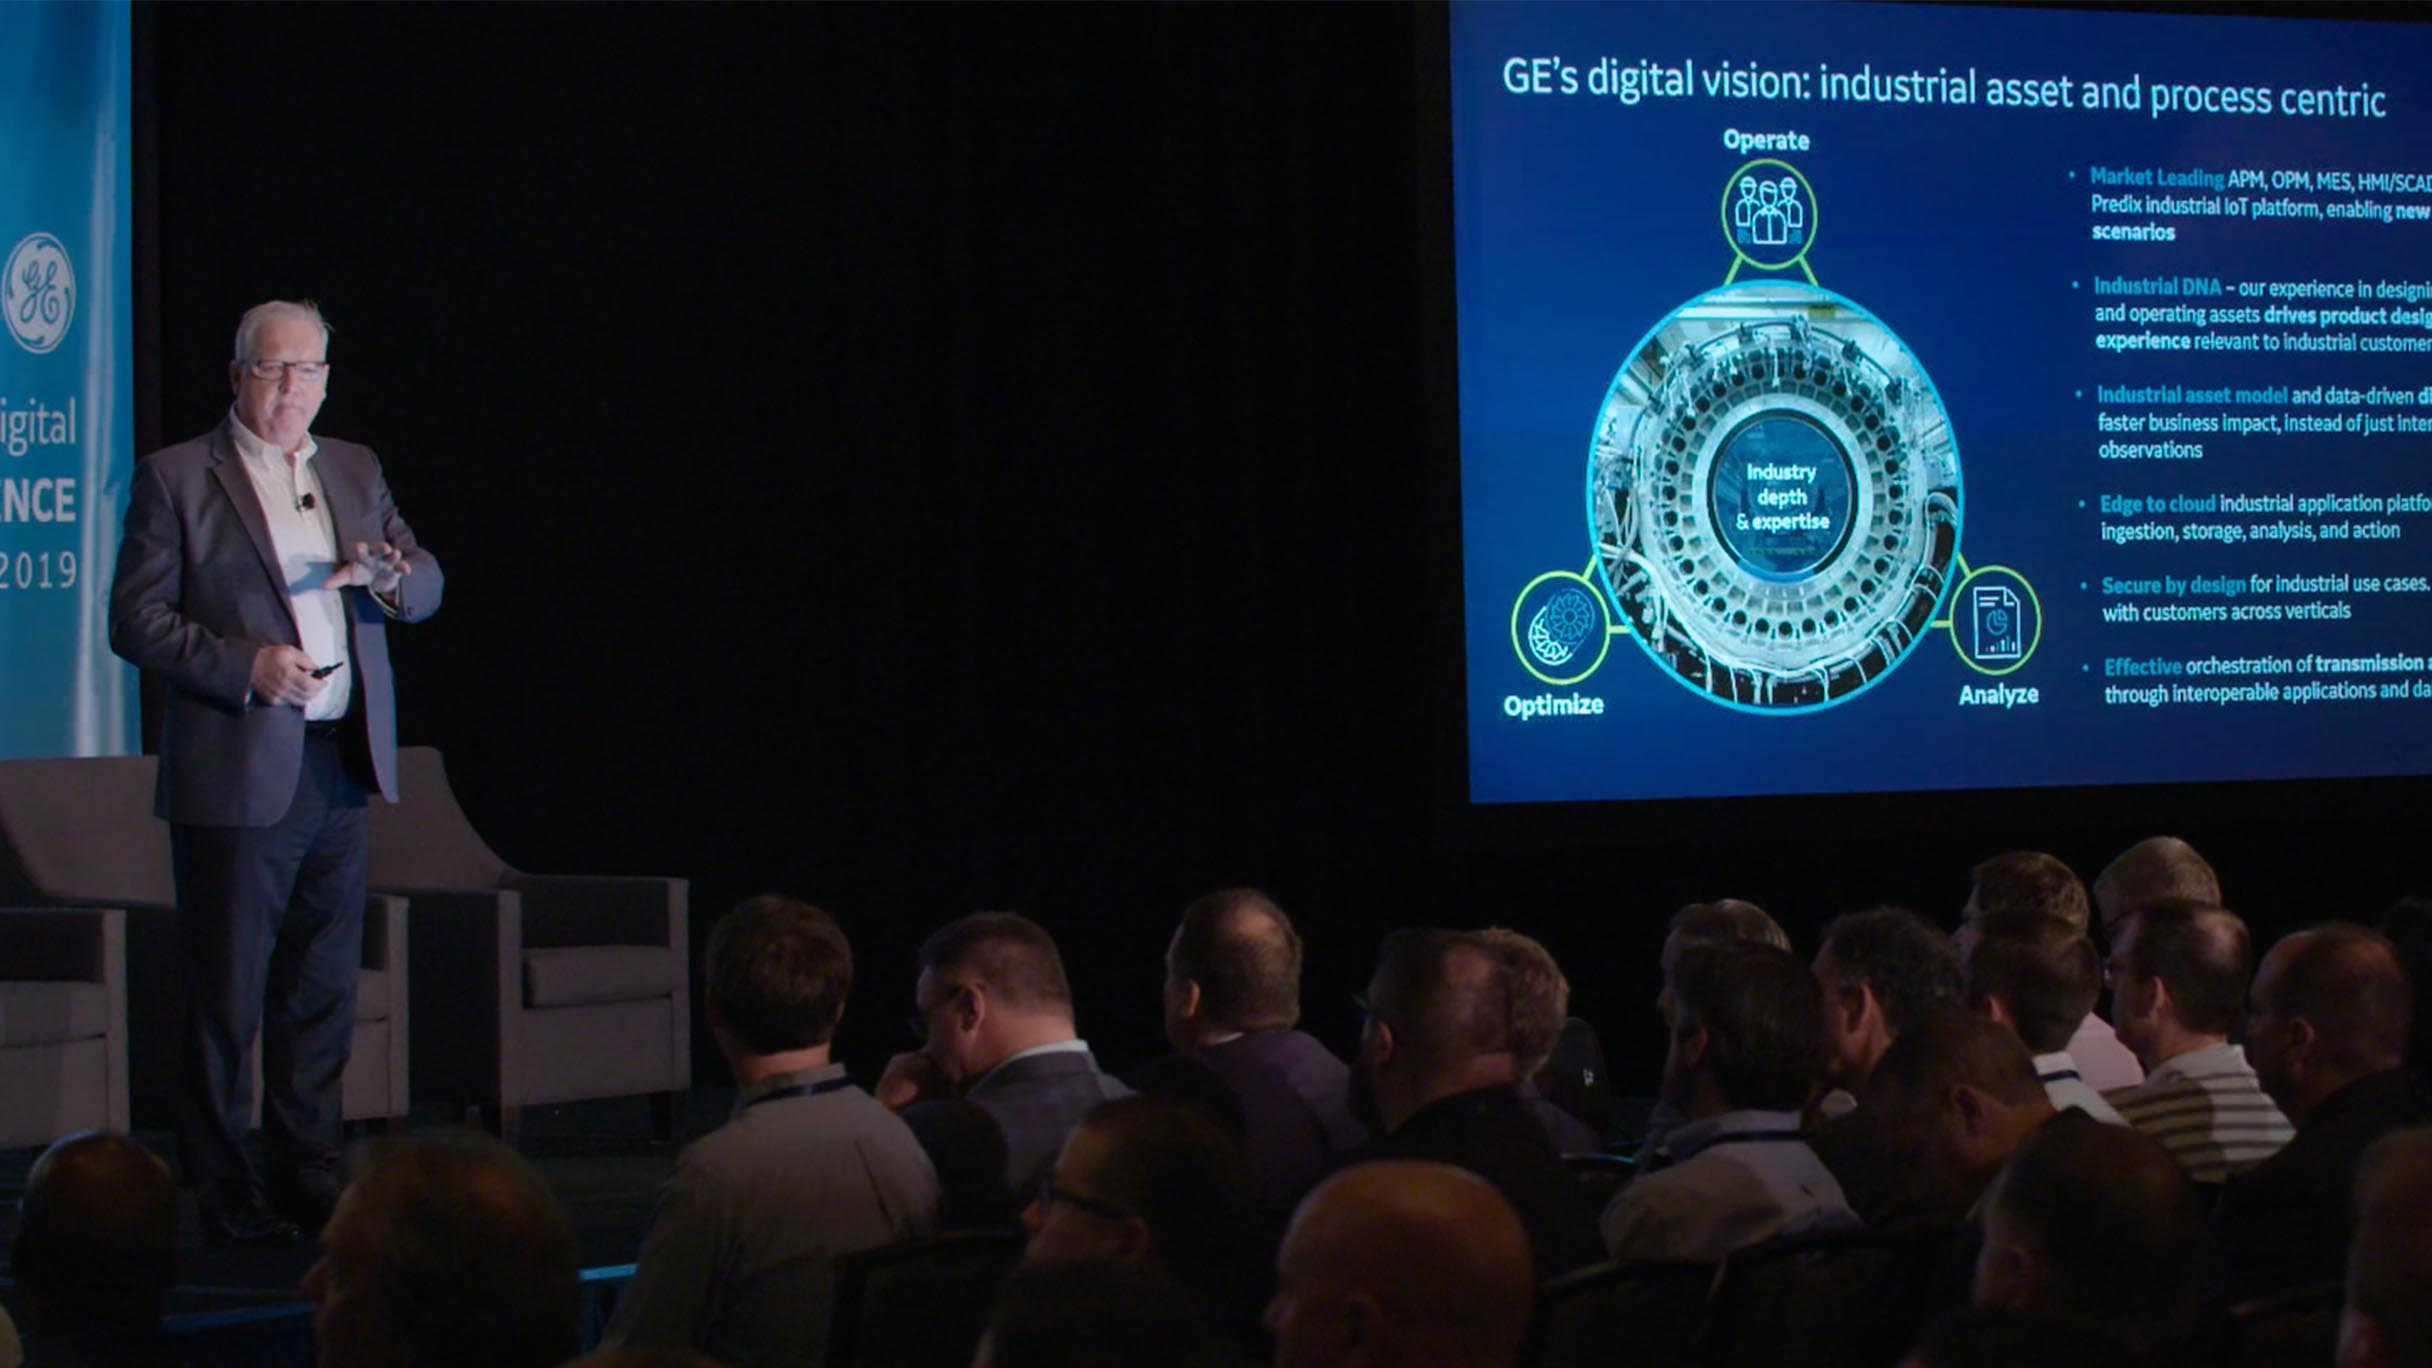 Pat Byrne, GE Digital CEO, addresses 2019 User Conference attendees